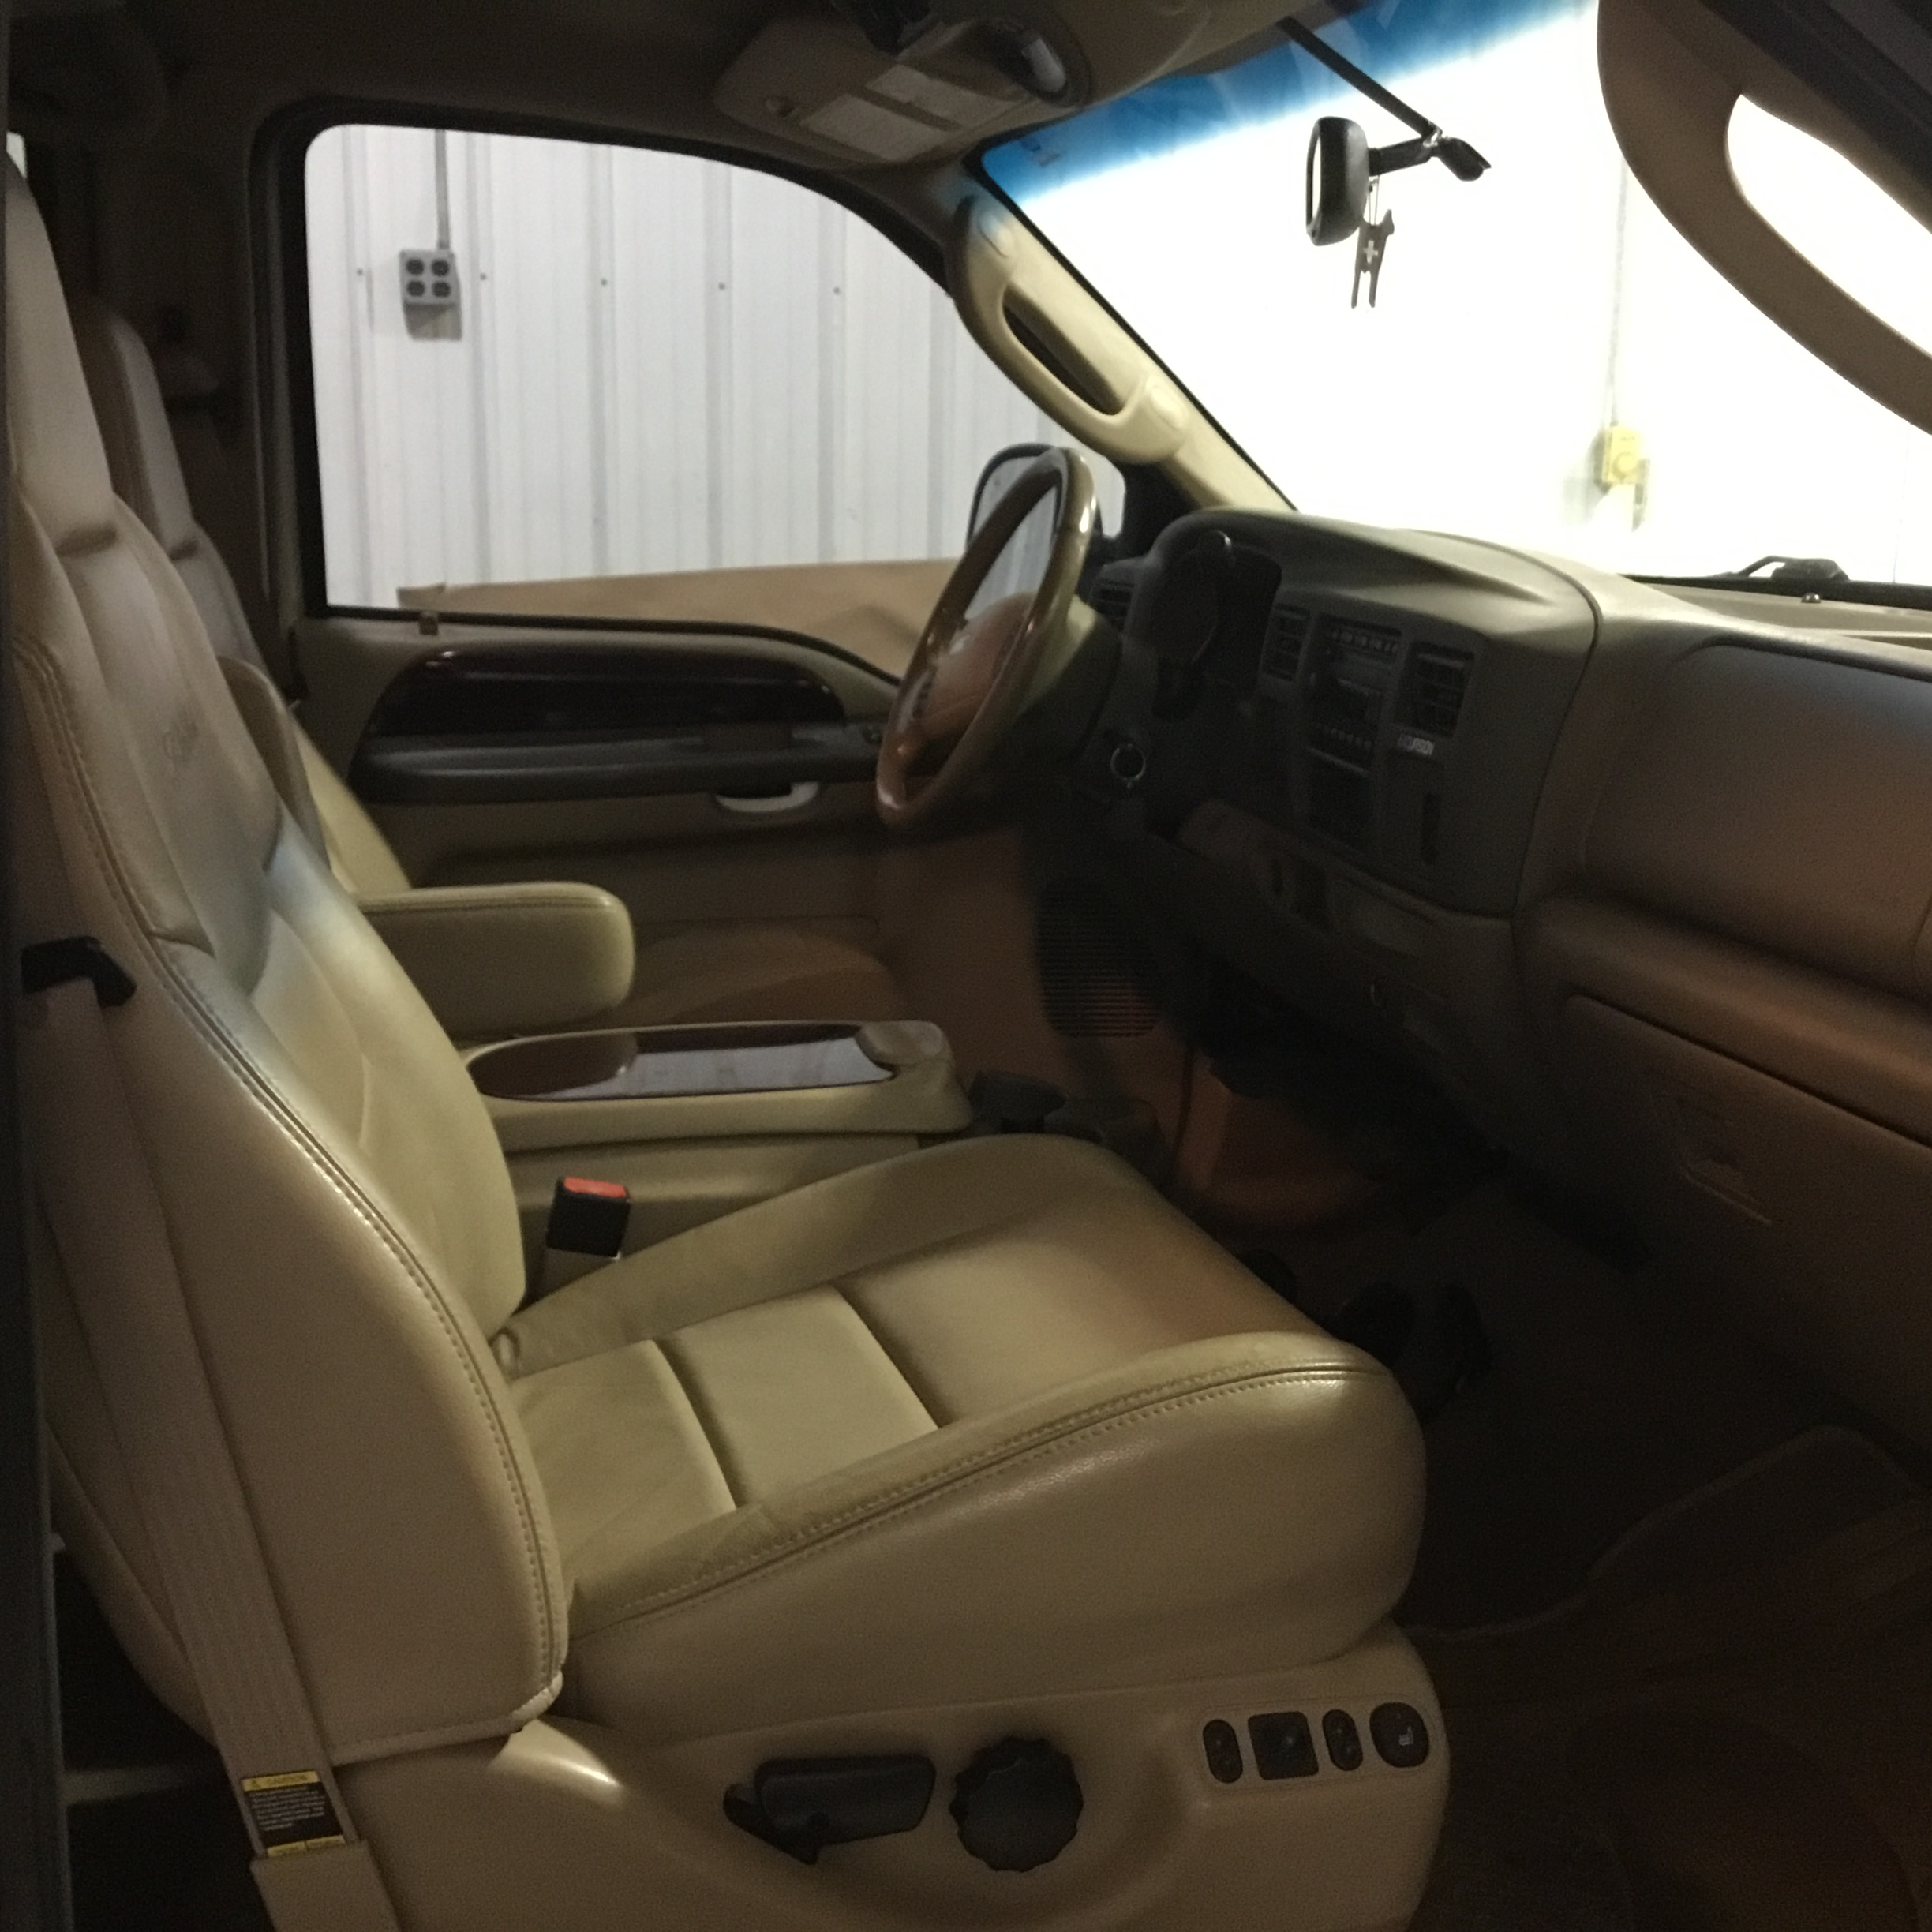 2004 Ford Excursion Limited, 6.0 Diesel, 4x4, 205,000 Miles, Vin 1C4NJPBB2HD103824, Tan, Good - Image 5 of 12